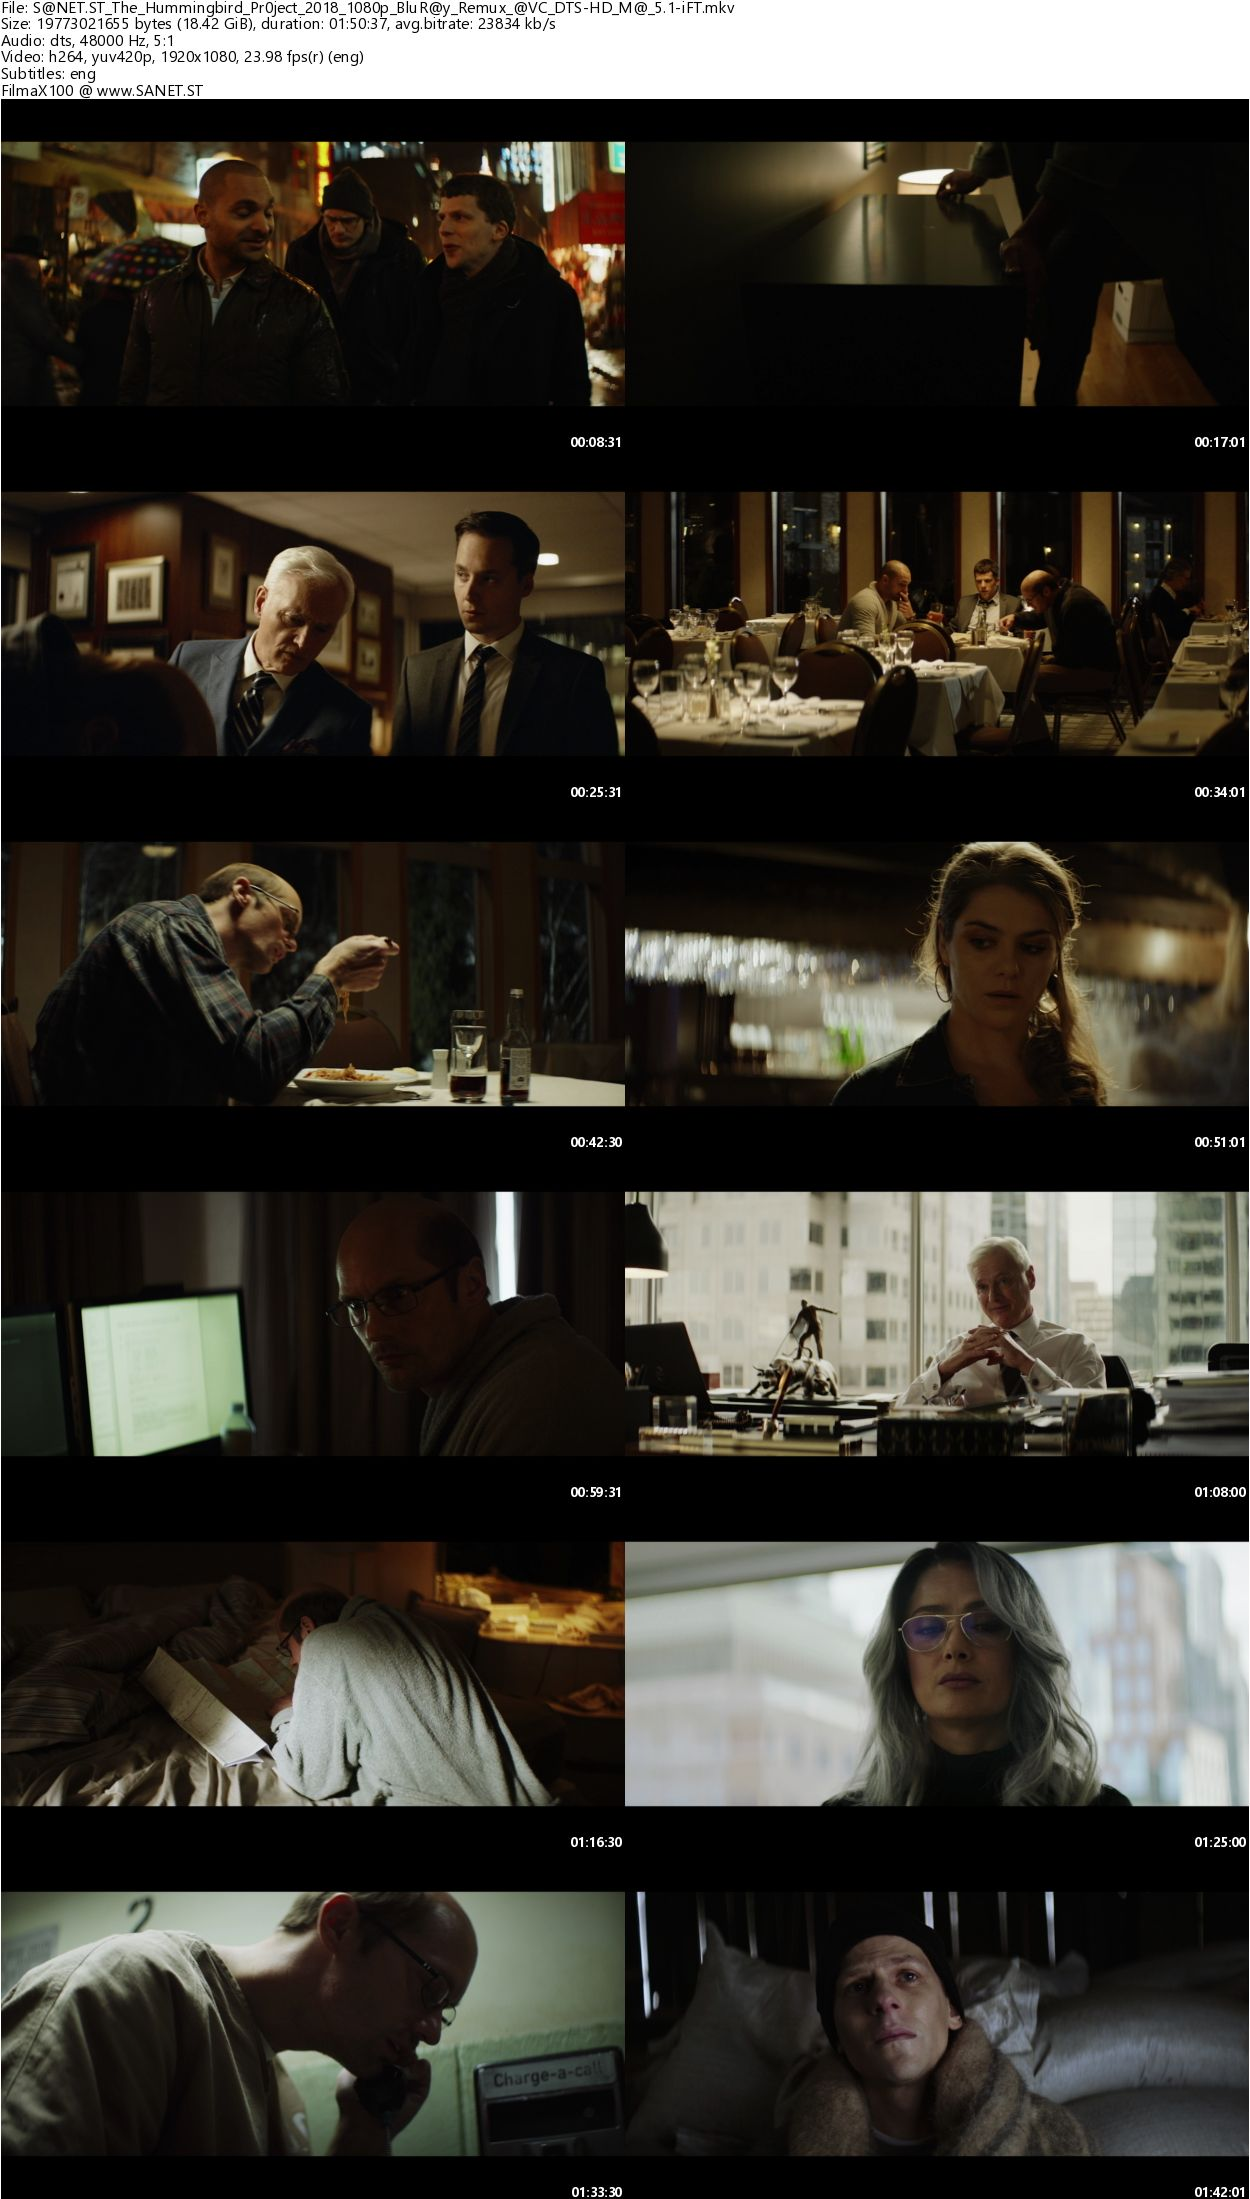 Download The Hummingbird Project 2018 1080p BluRay Remux AVC